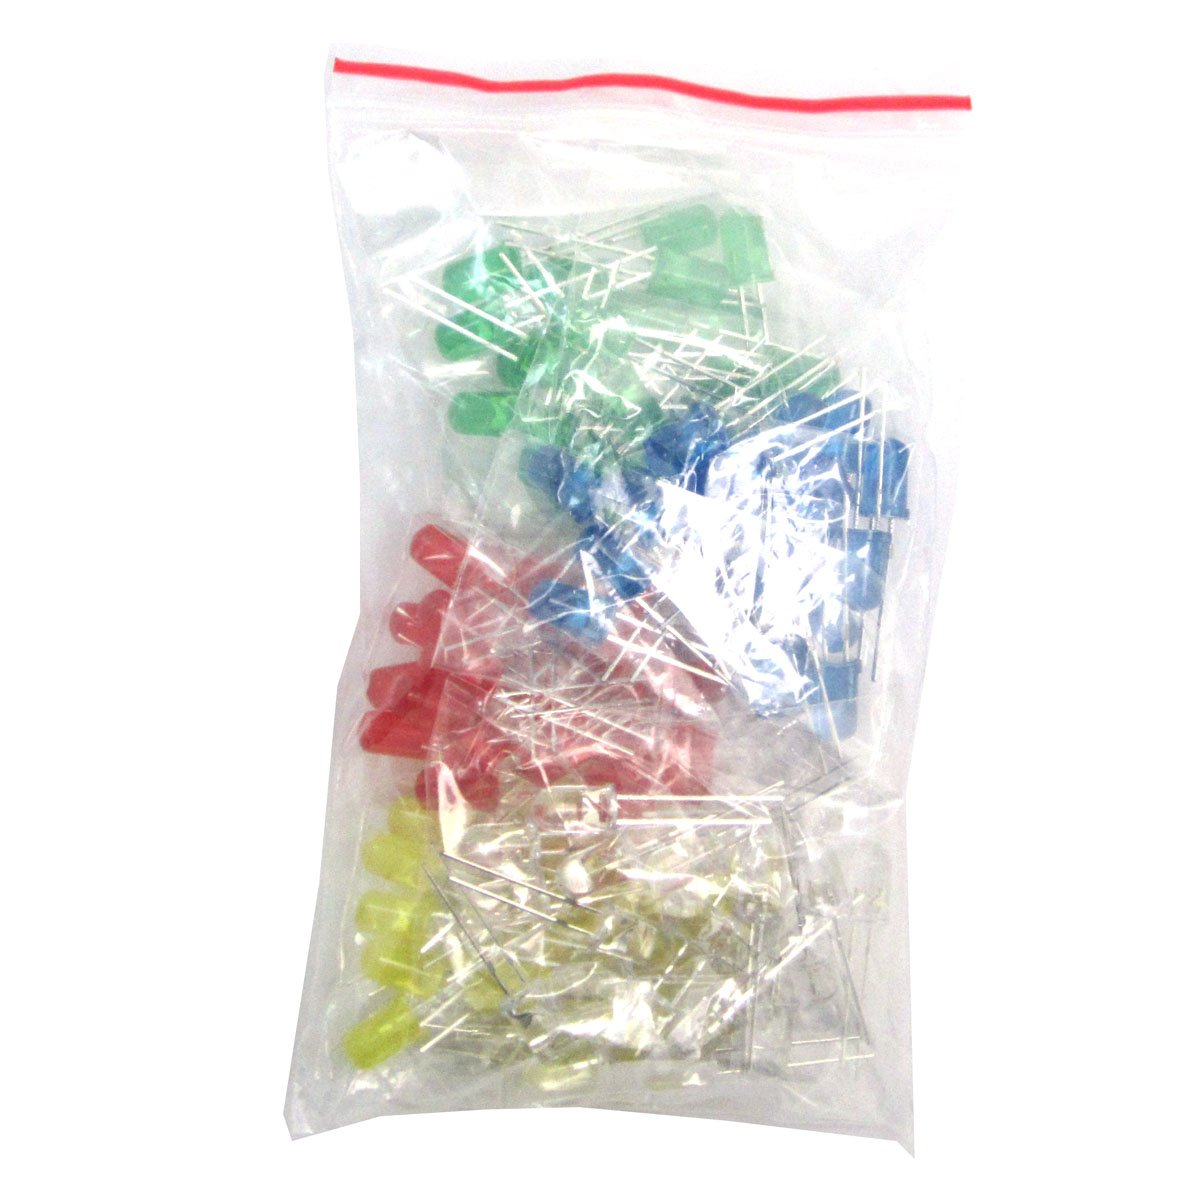 LED Diodes 30 Values Resistors,Electrolytic Capacitor Package Ceramic Capacitors Common Diodes Common Transistor WINGONEER Electronic Components Package Total 1390 PCS